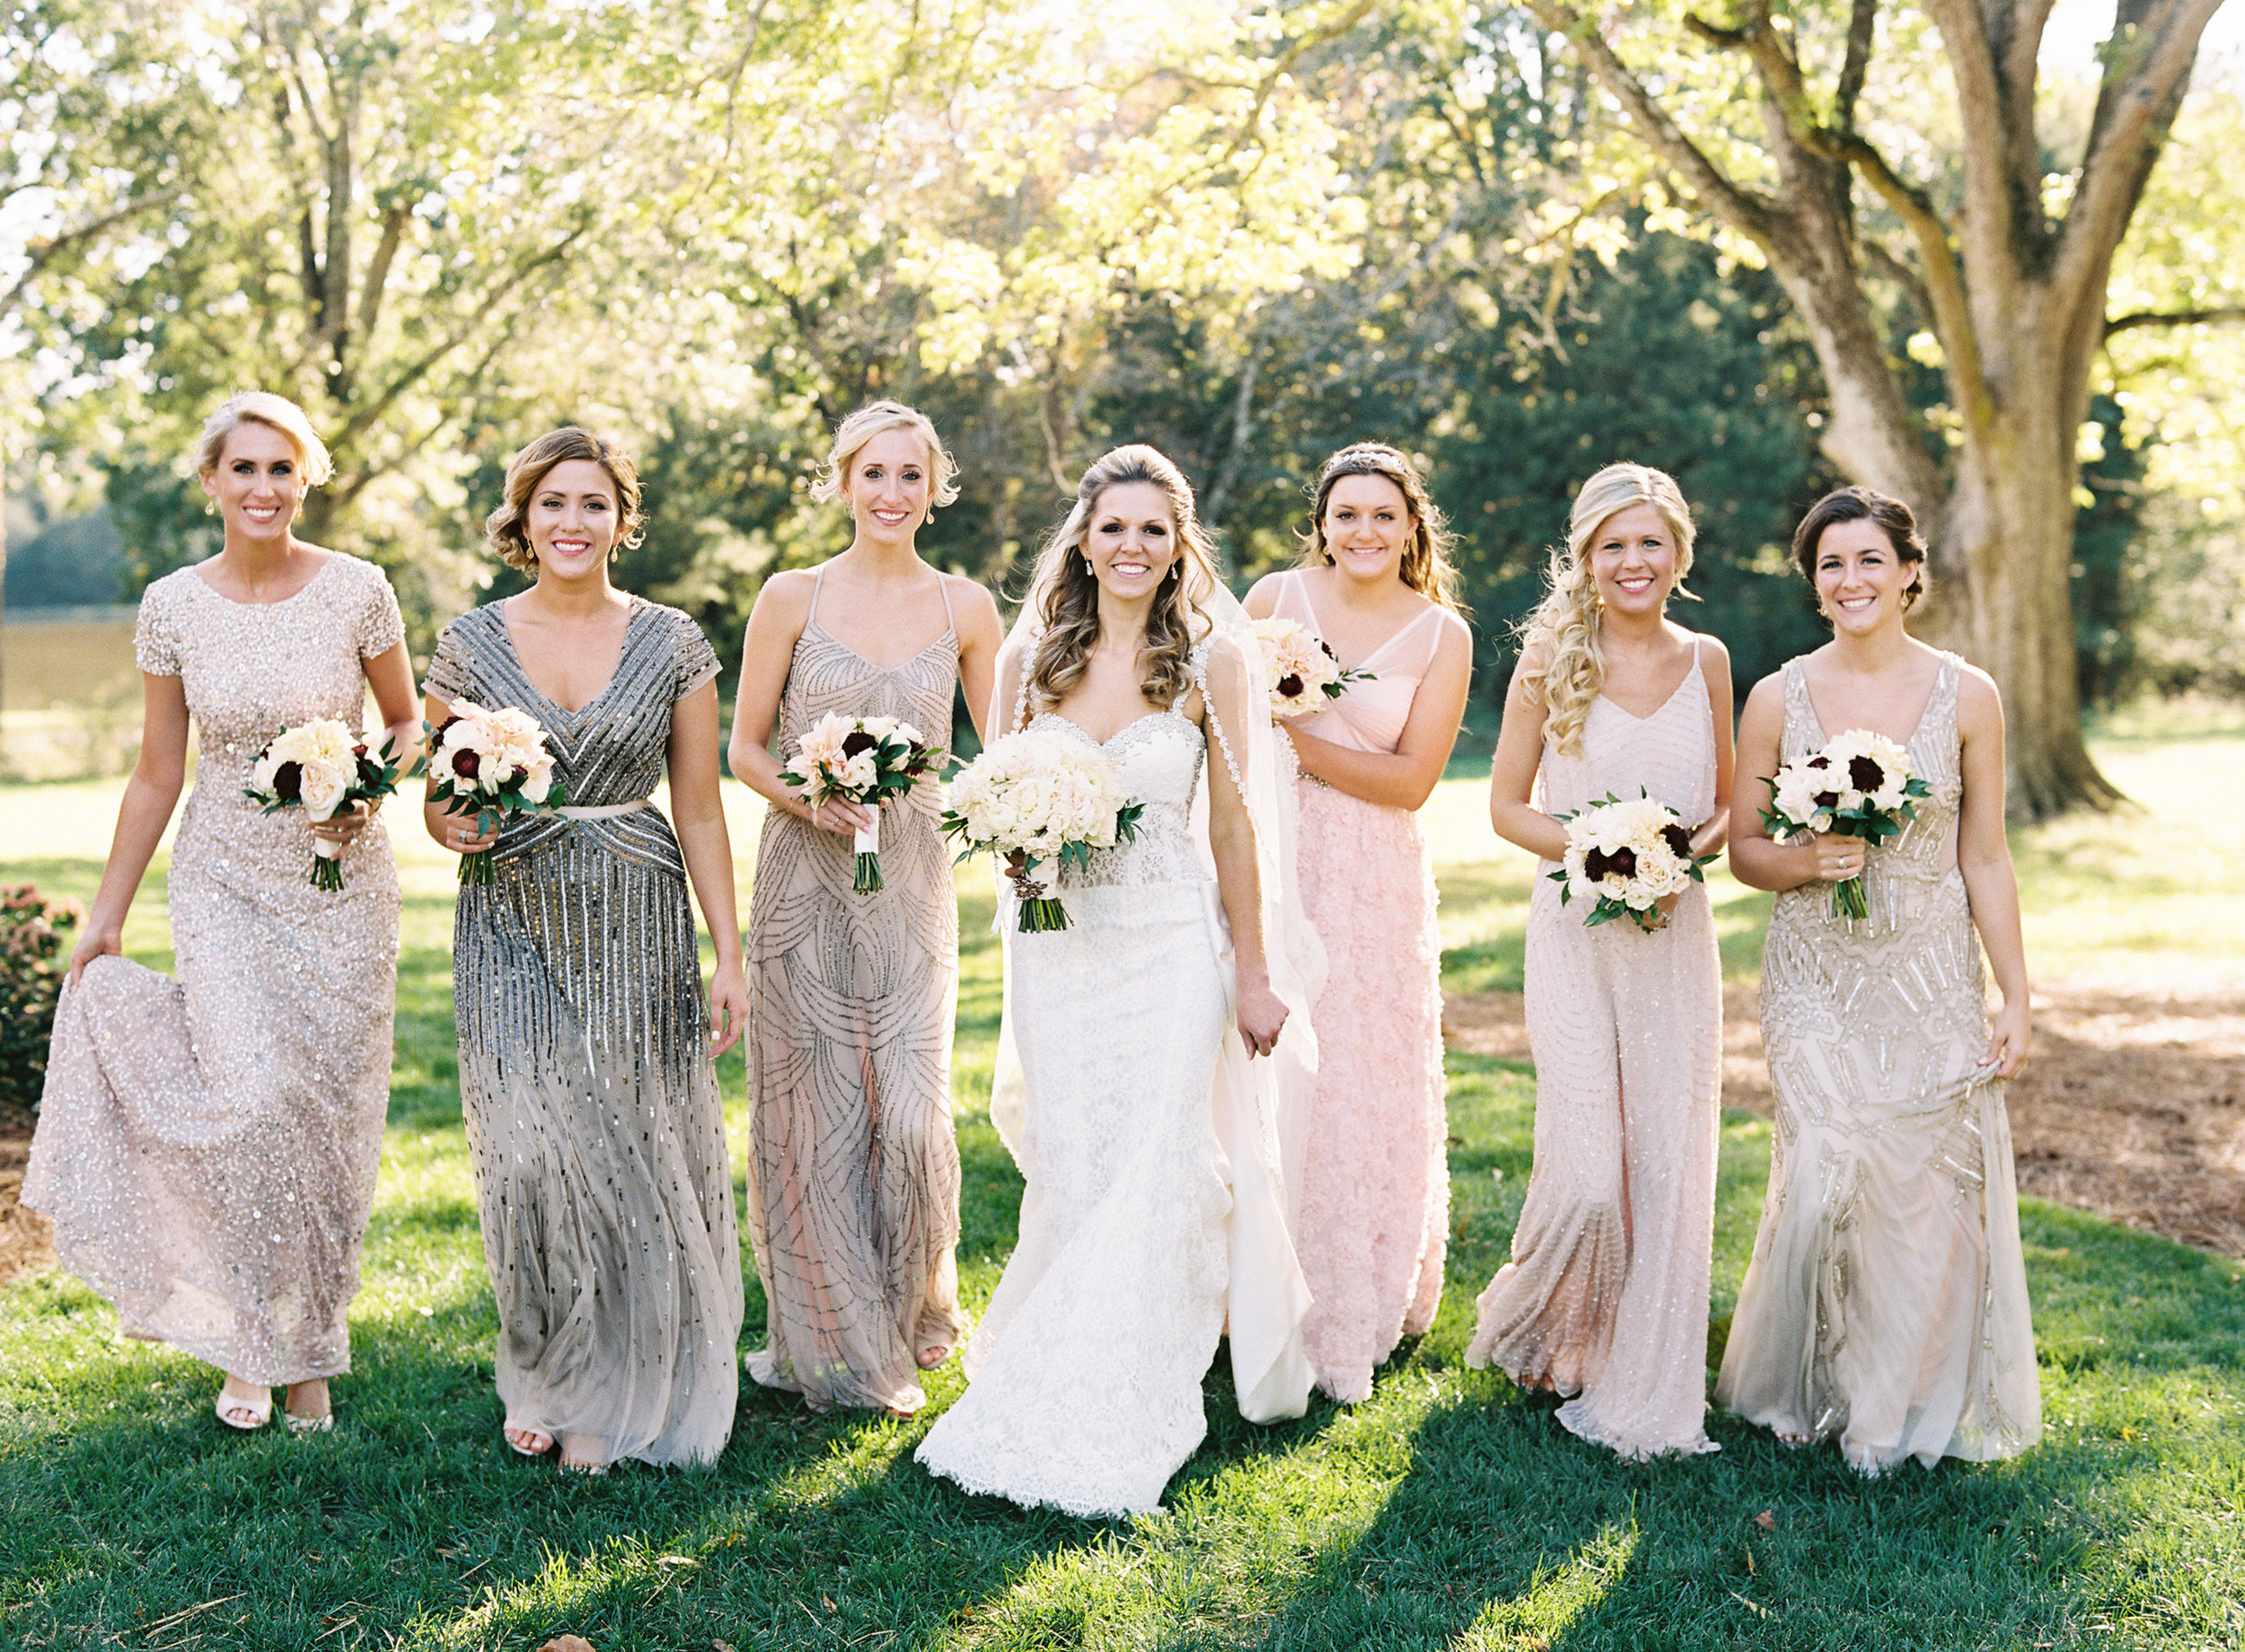 What kind ofmclean Bride are you? - Take our fun quiz now!